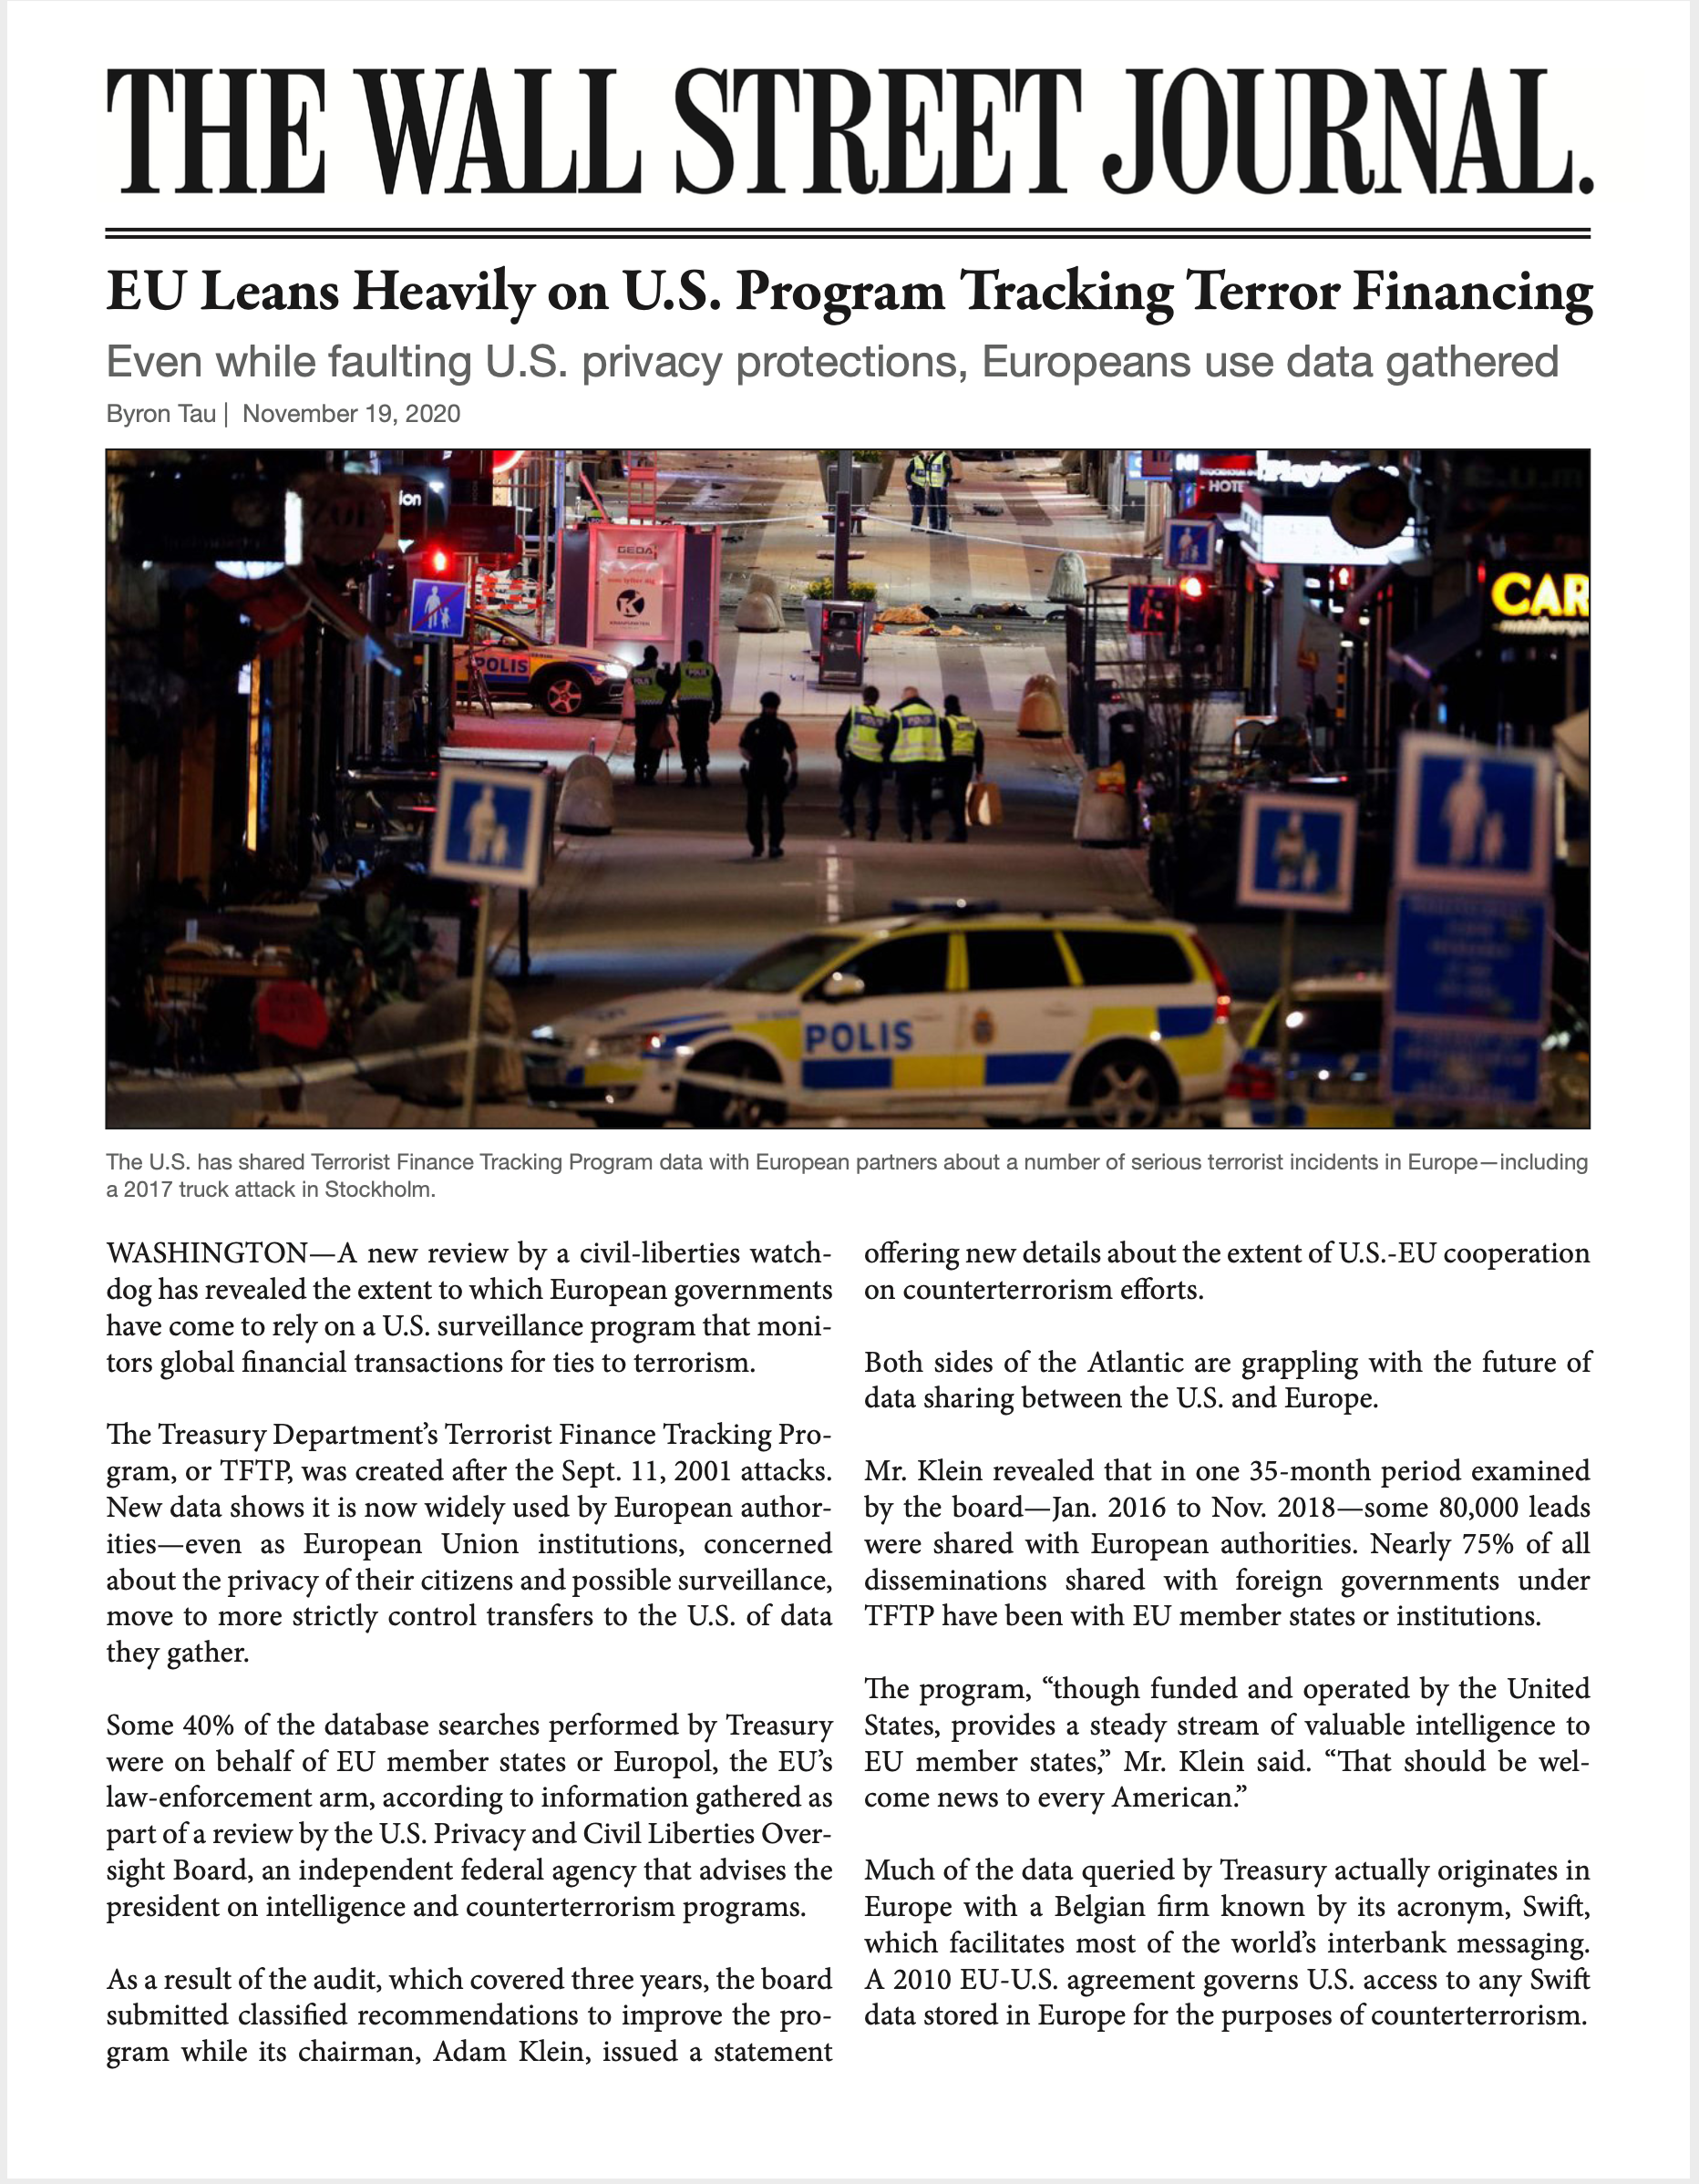 https://www.wsj.com/articles/eu-leans-heavily-on-u-s-program-tracking-terror-financing-11605794404?mod=searchresults_pos1&page=1